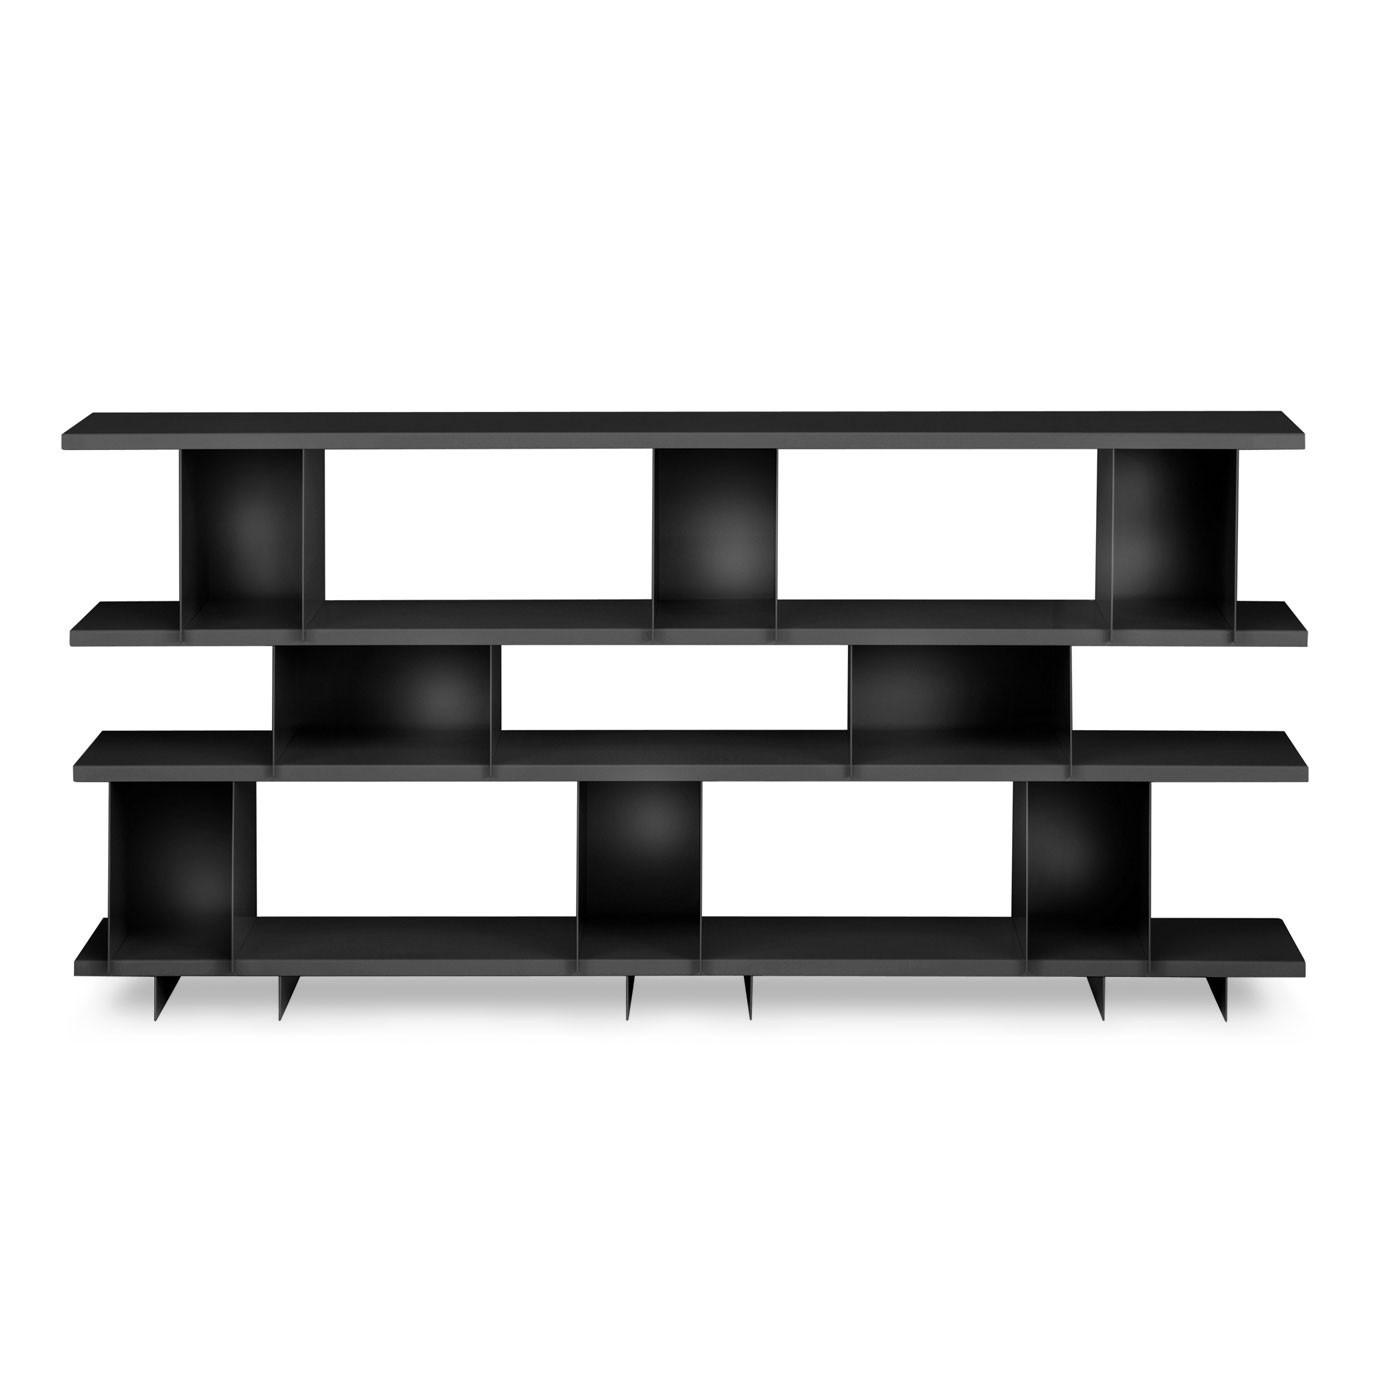 Chic Black Painted Hardwood Modern Wall Shelves